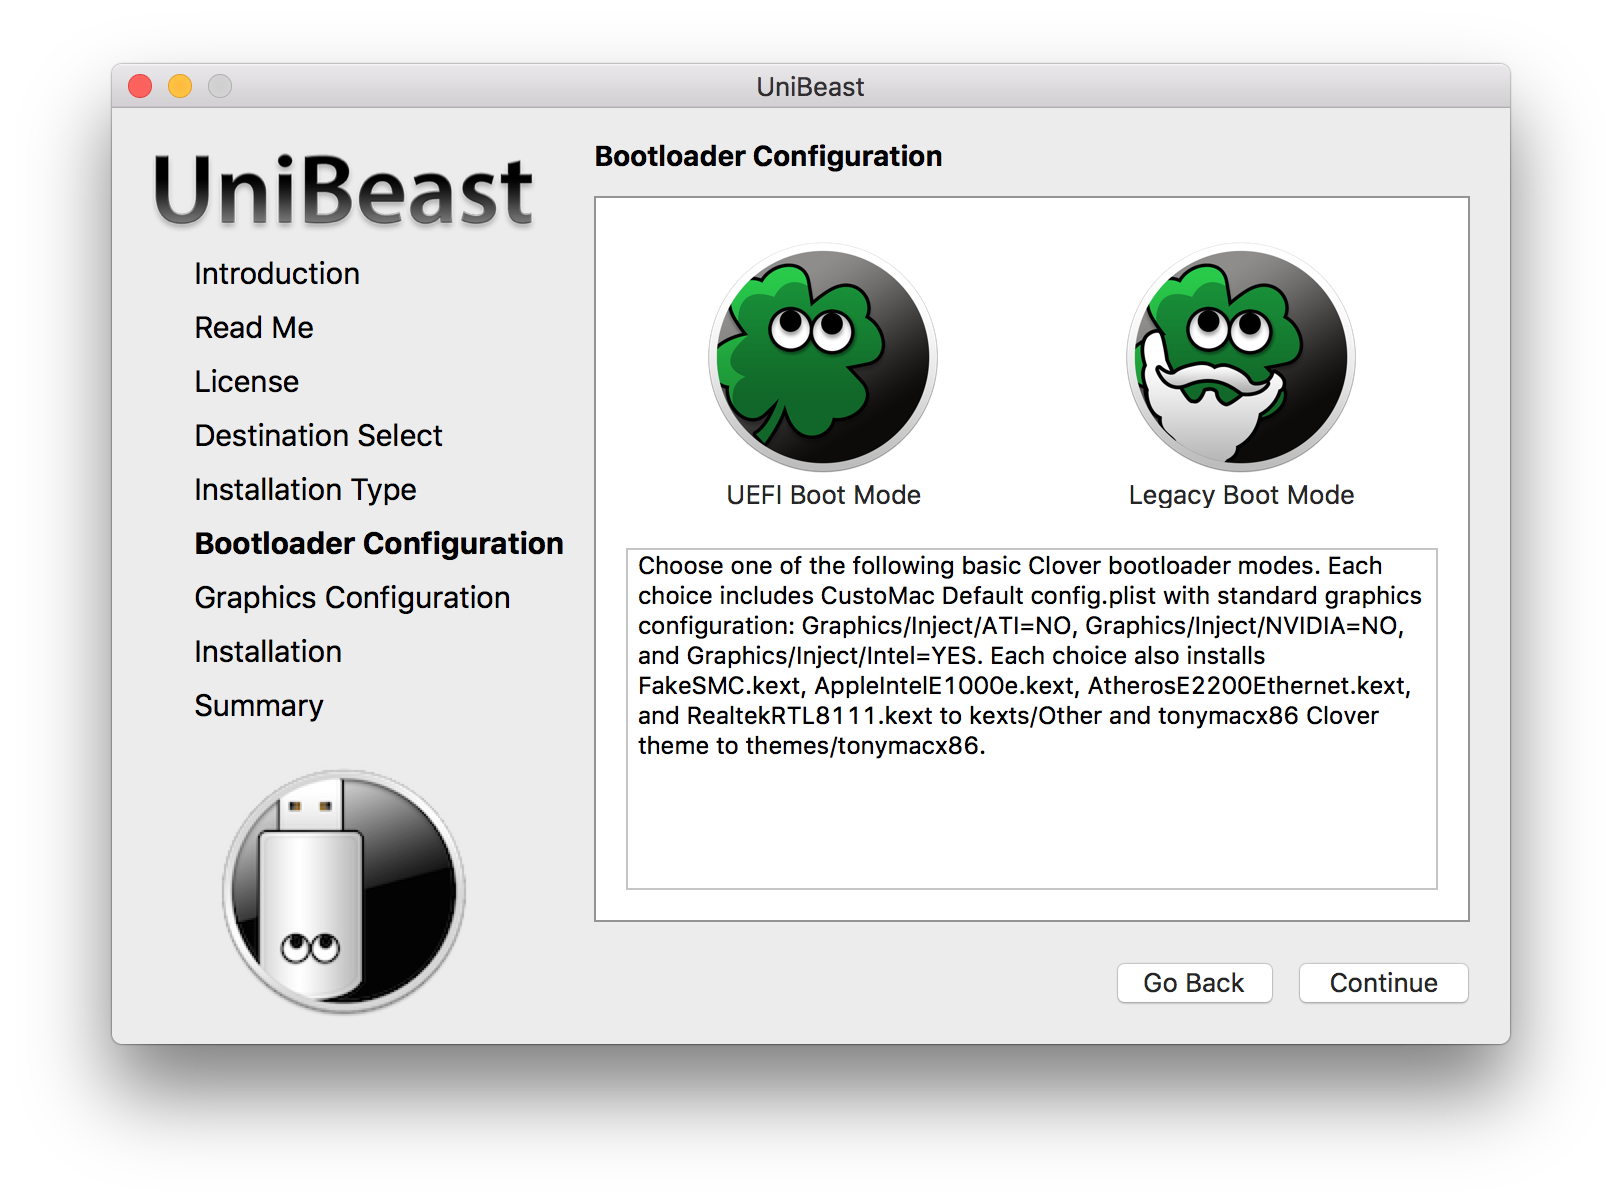 UniBeast: Install macOS Sierra on Any Supported Intel-based